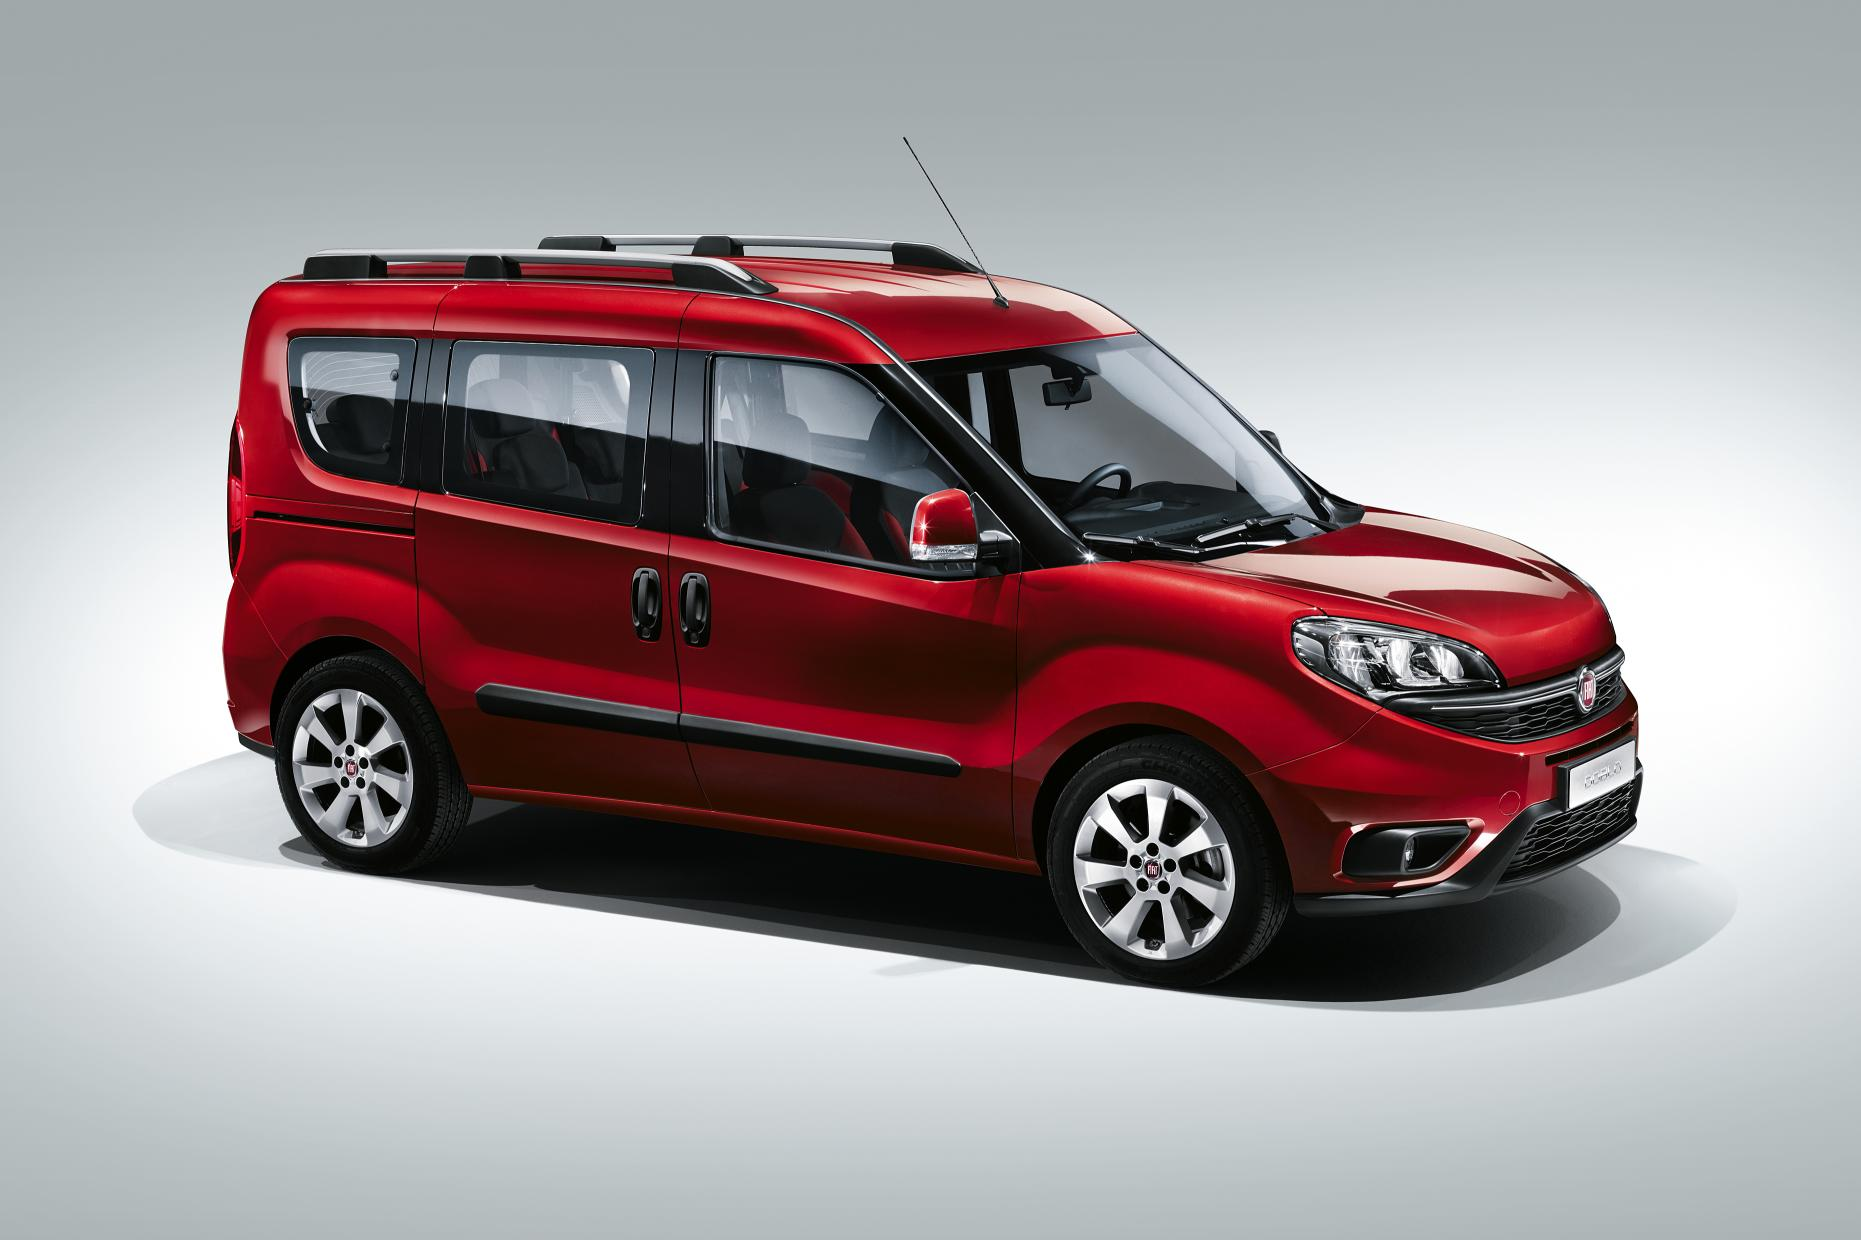 2015 Fiat Doblo Pricing Starts at £13,480 - autoevolution